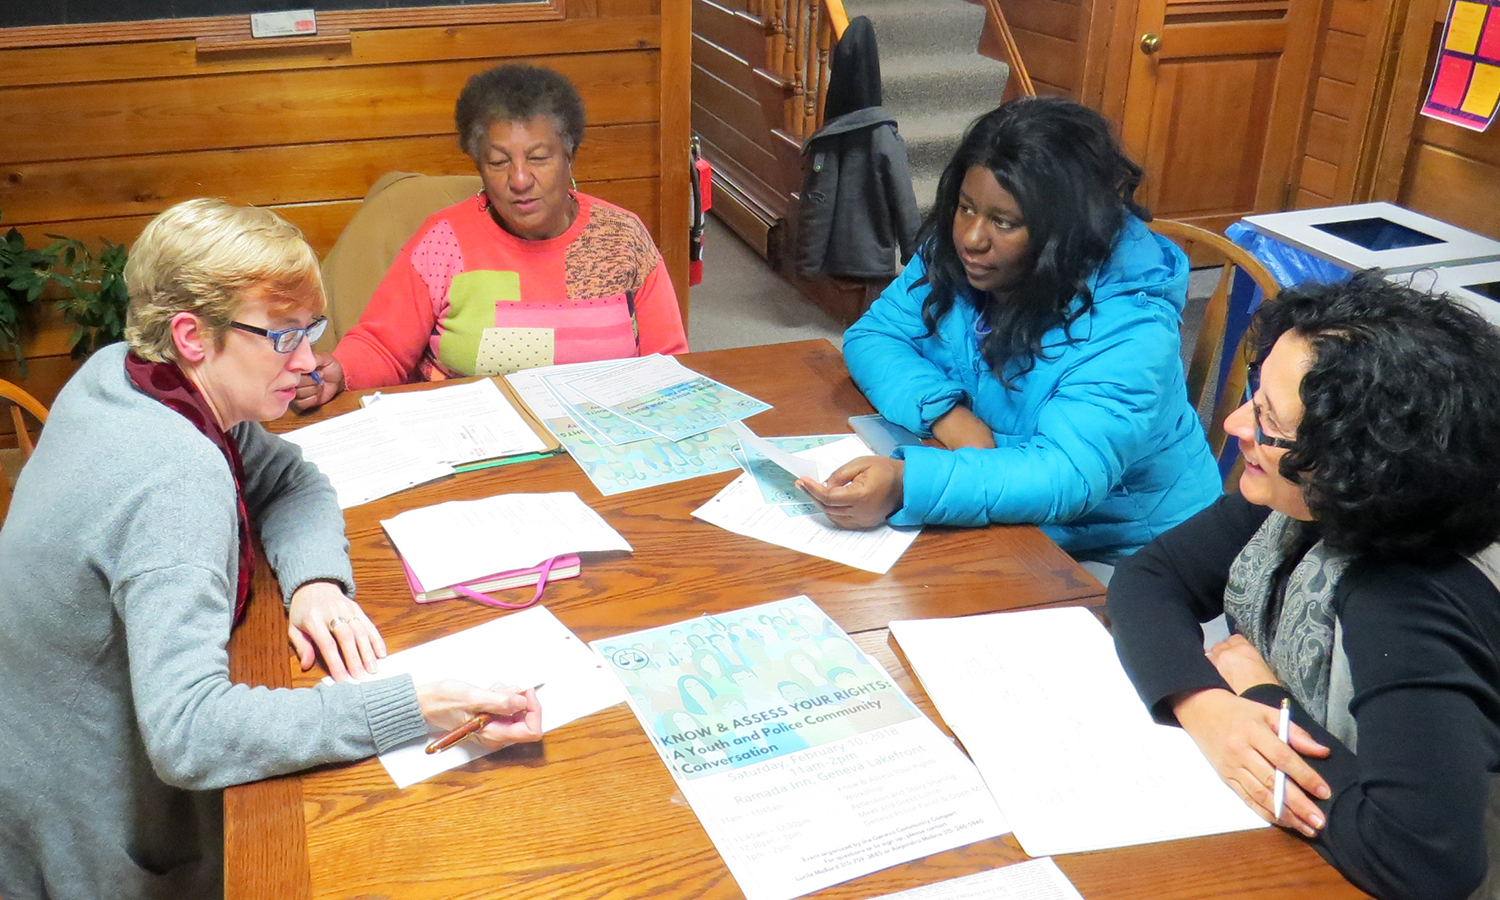 Director of Ontario/Yates Counties Center for Dispute Settlement Kim Reisch, Director of the Geneva NAACP Lucile Mallard, Director of Intercultural Affairs Alejandra Molina and X plan the upcoming youth and police community forum ​as part of the Community Compact meeting in the Office of Intercultural Affairs.